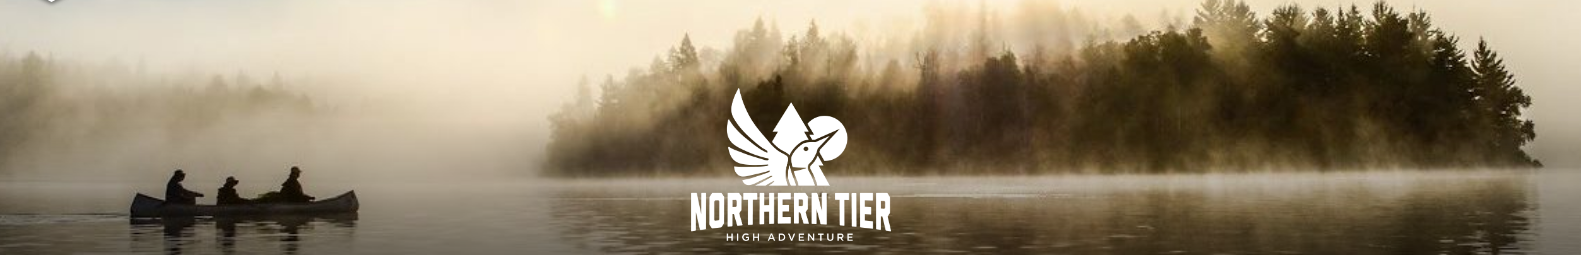 2019-07-31 08_34_51-Home _ Northern Tier